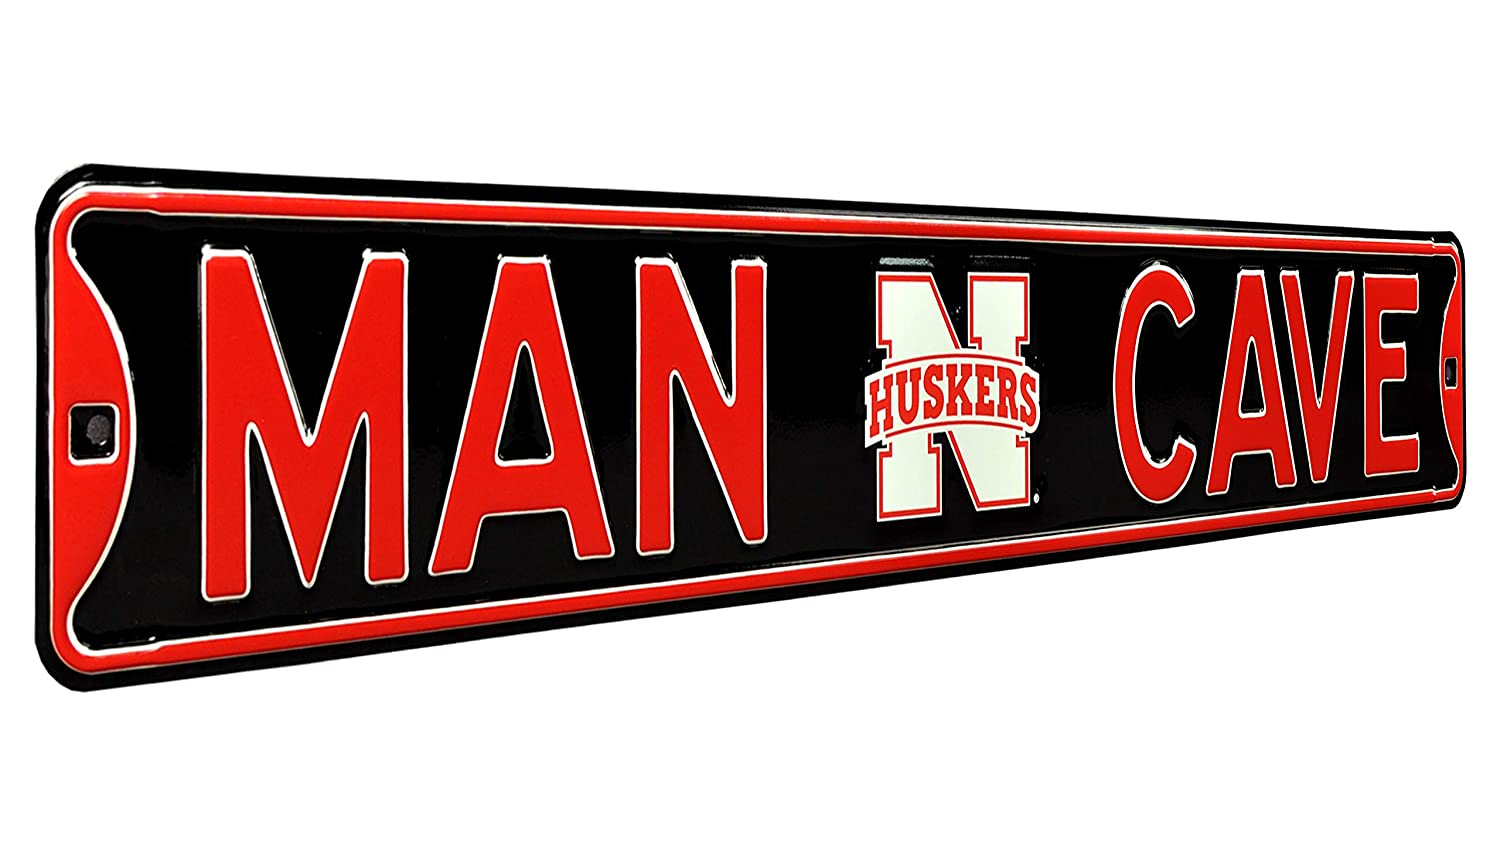 Office Team Color Authentic/  Street Signs NCAA/ MAN CAVE REAL 3 Foot Garage- Perfect Gift for Him!! 36 x 6 Premium Grade Solid Steel/ Embossed STREET SIGN- Prime Wall Decor for Home Nebraska Cornhuskers Officially Licensed